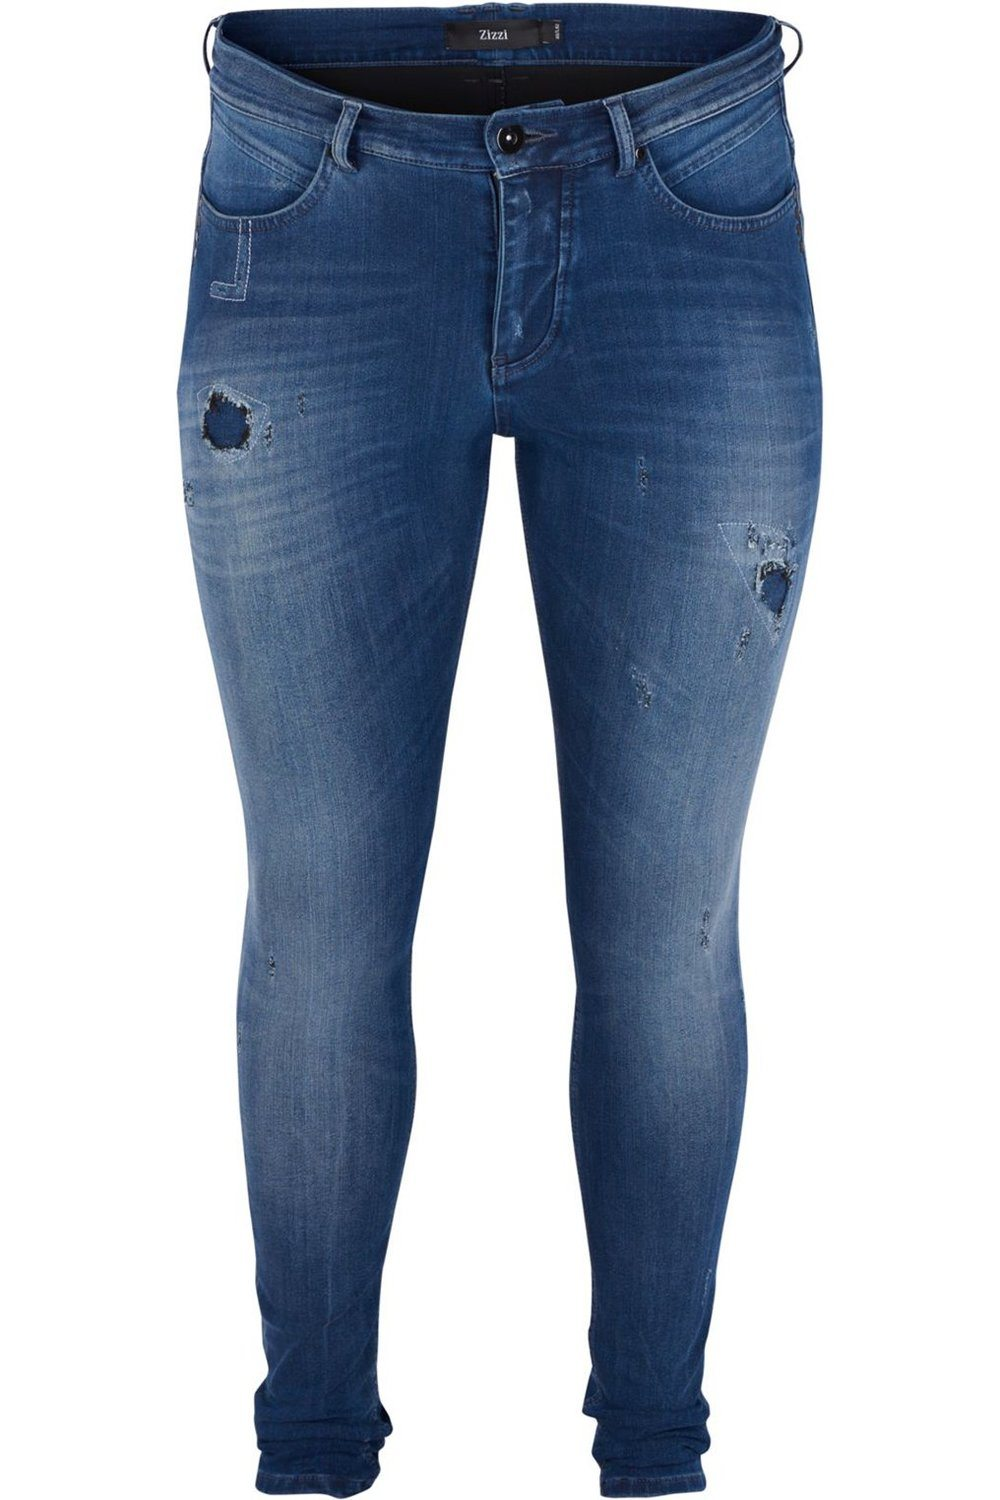 Jeans Zizzi Amy destroyed effects